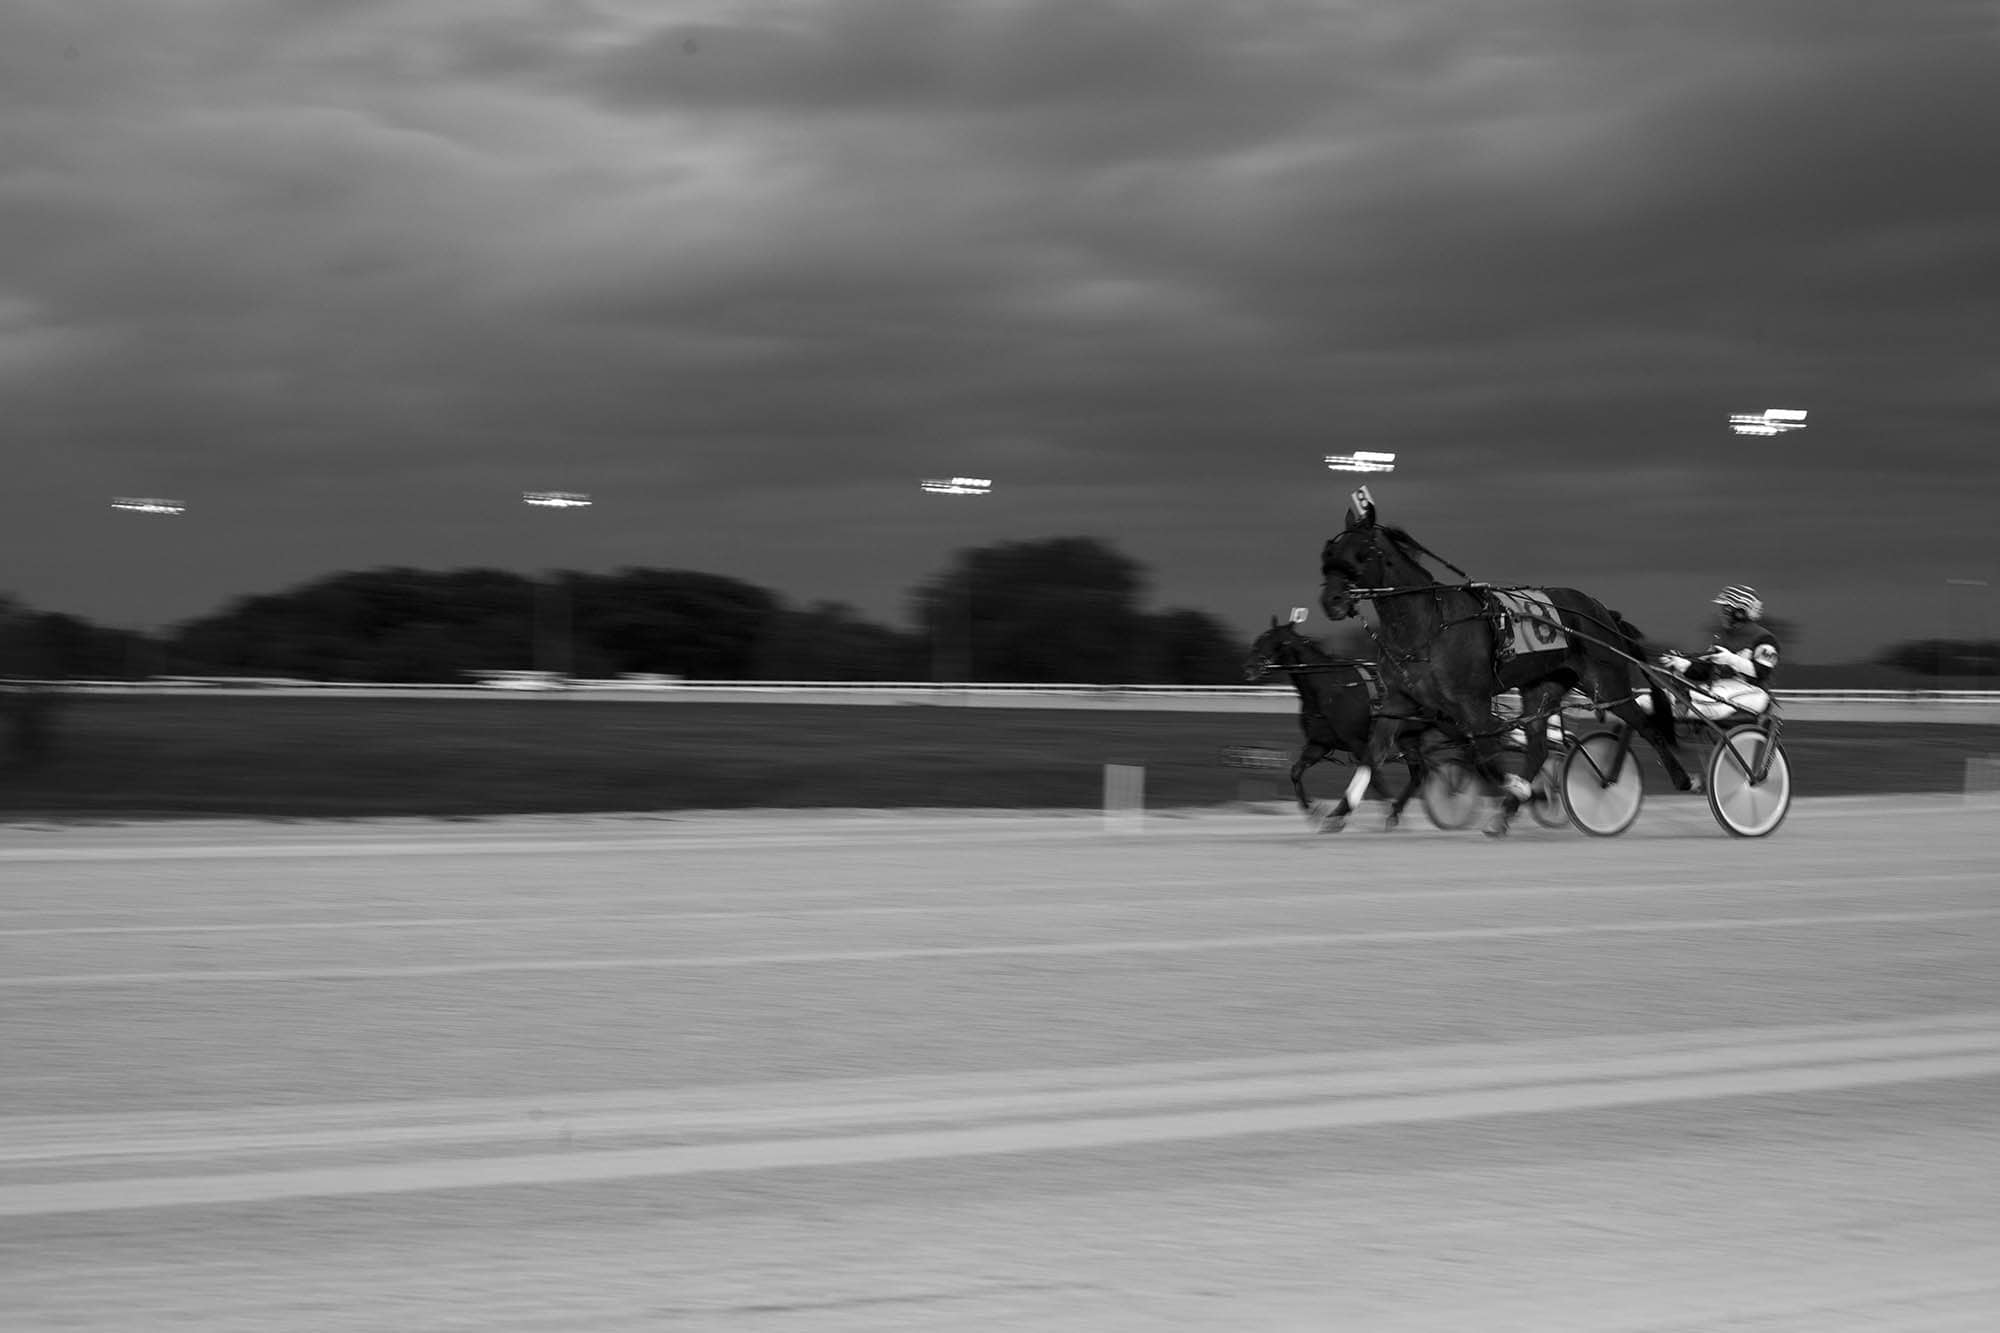 Photography assignment: Panning Motion - Horse races panned.